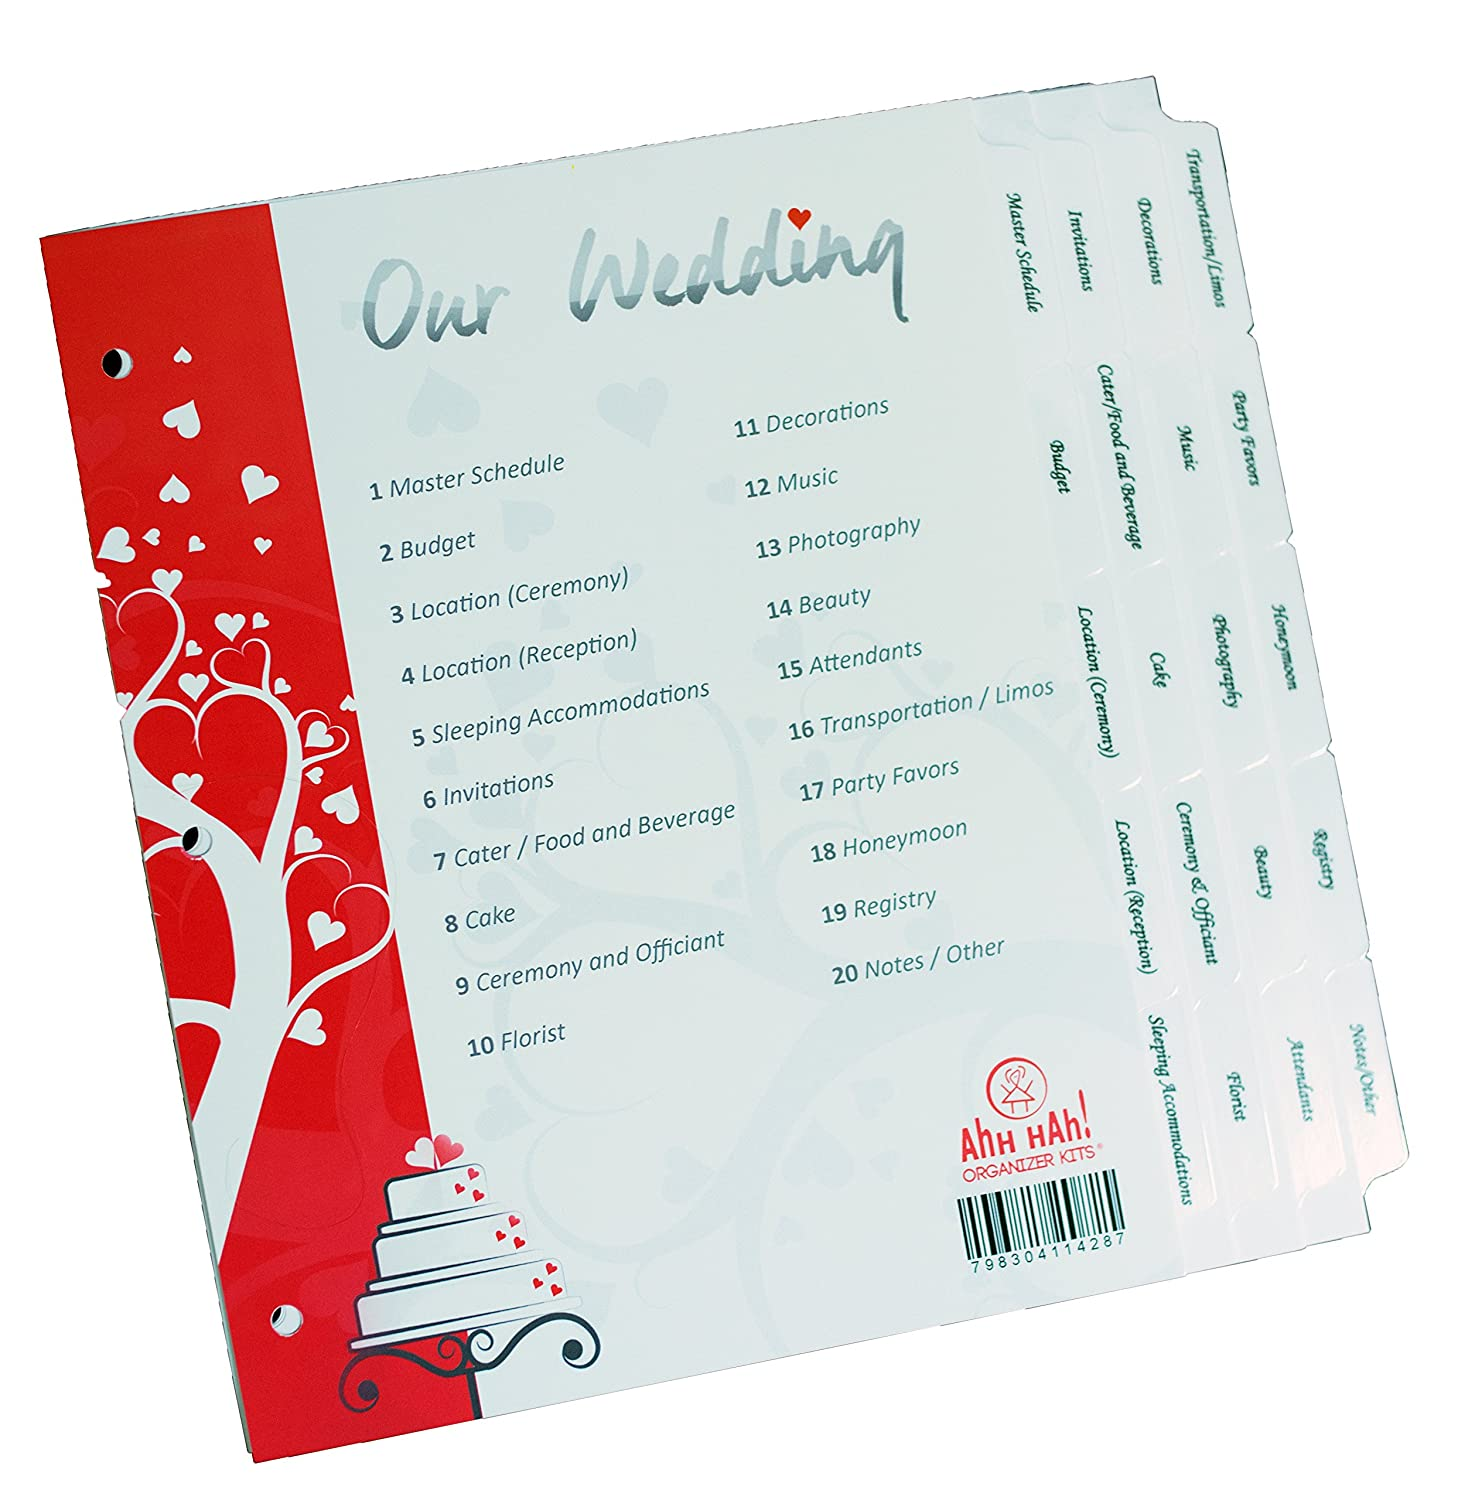 Ahh Hah! Wedding Kit Organizer: Pre-printed Index Tabs for Three Ring Binder